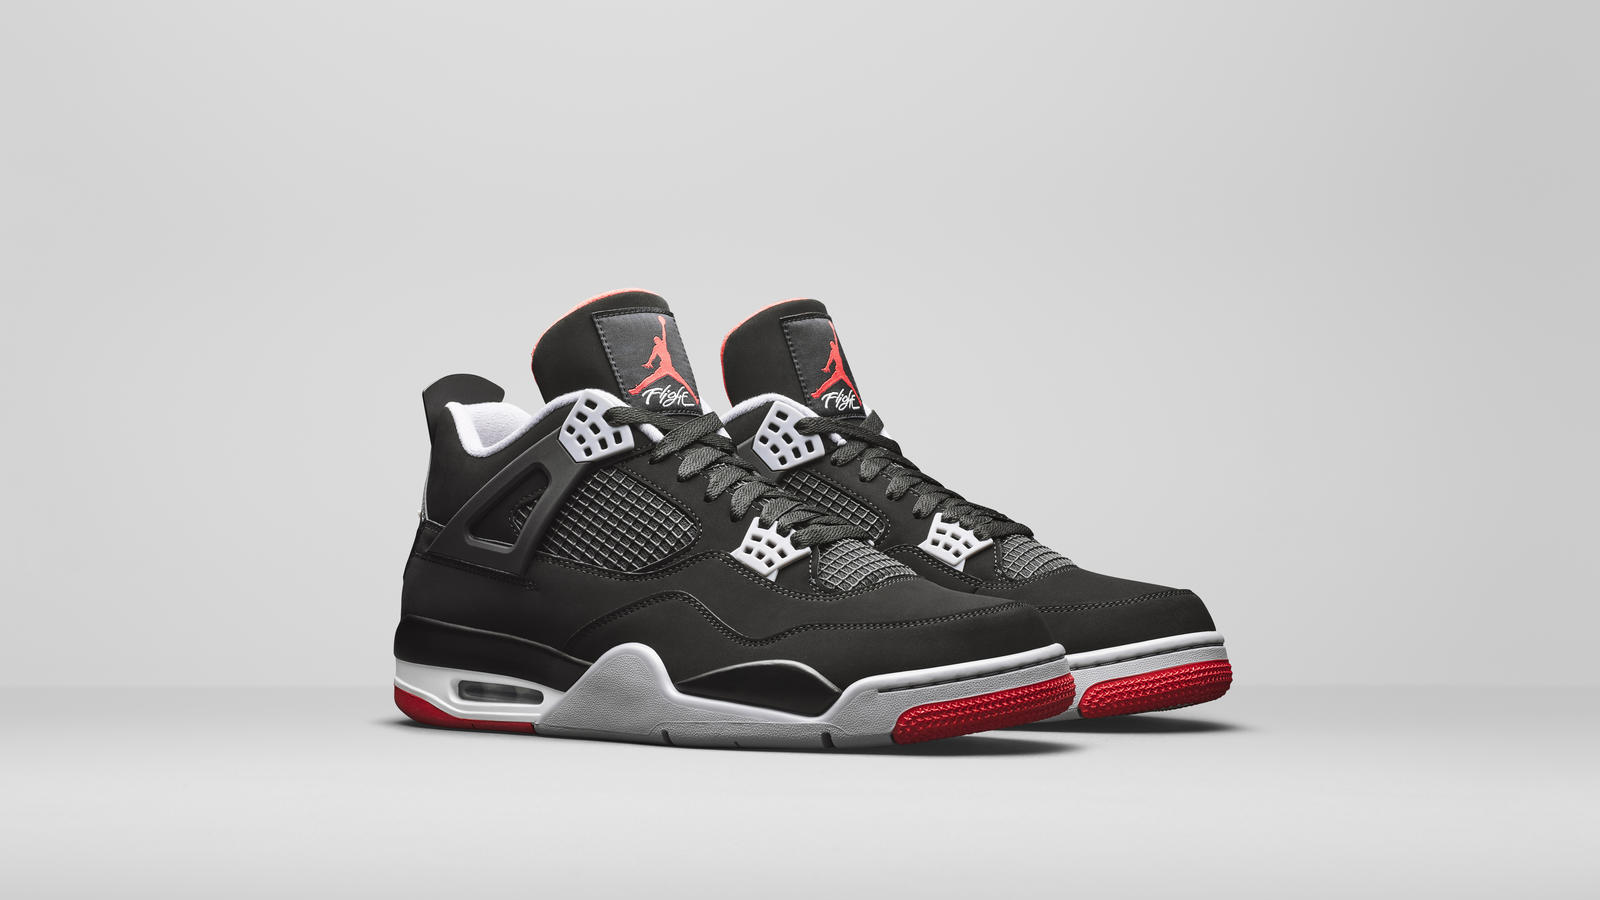 buy popular 4400f 237ca Air Jordan 4 Bred Official Images and Release Date - Nike News